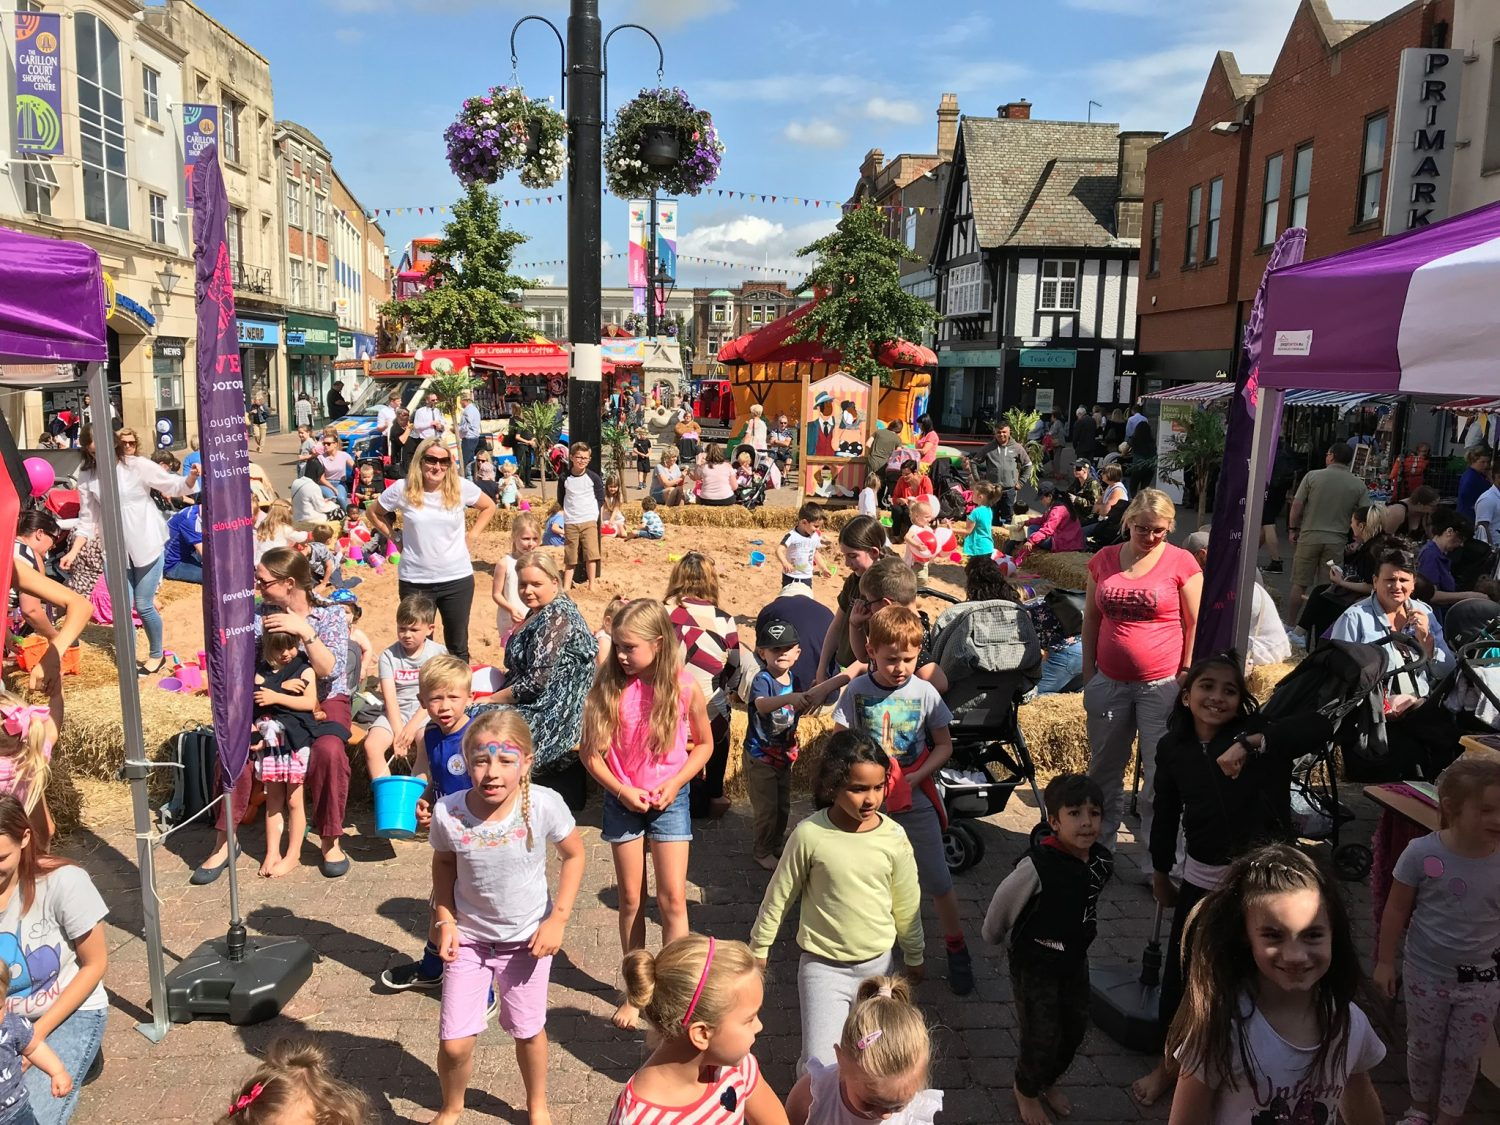 Loughborough by the Sea will not be taking place in August 2020